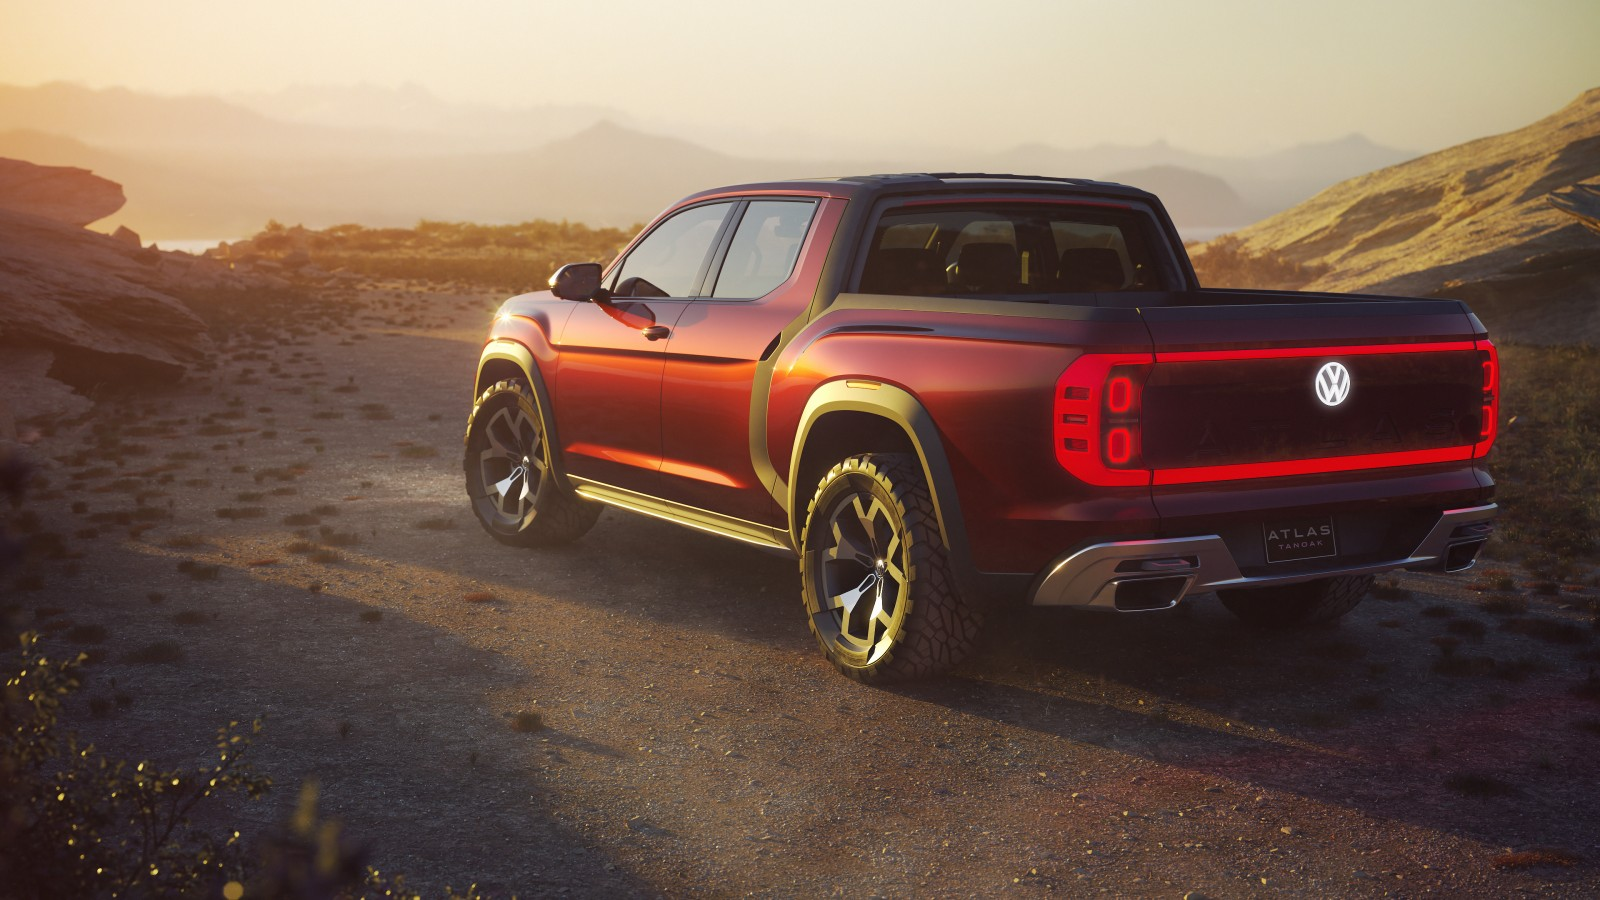 2018 volkswagen atlas tanoak pickup truck concept 4k 3 wallpaper hd car wallpapers. Black Bedroom Furniture Sets. Home Design Ideas